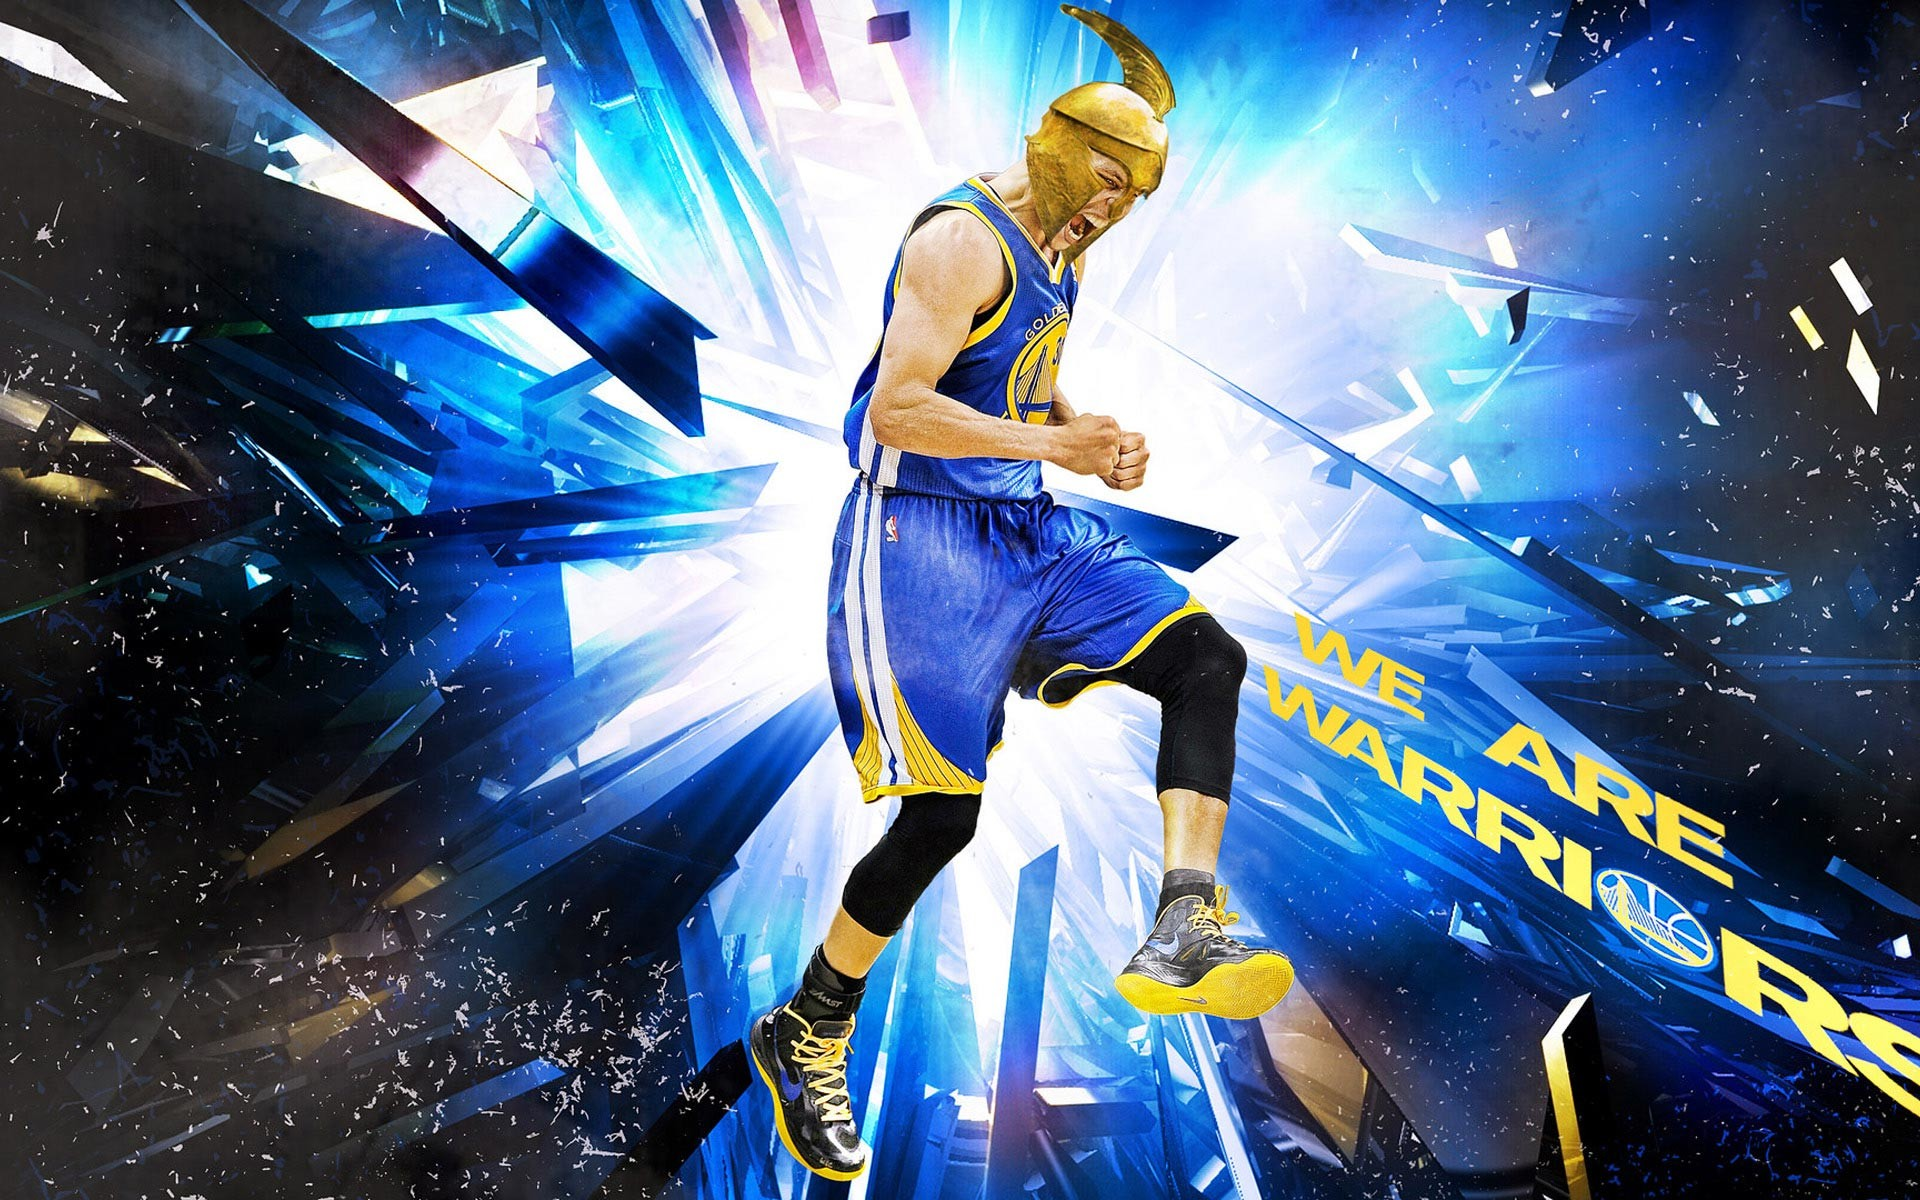 Stephen Curry Dope Wallpaper: Best Sports Wallpapers (70+ Background Pictures